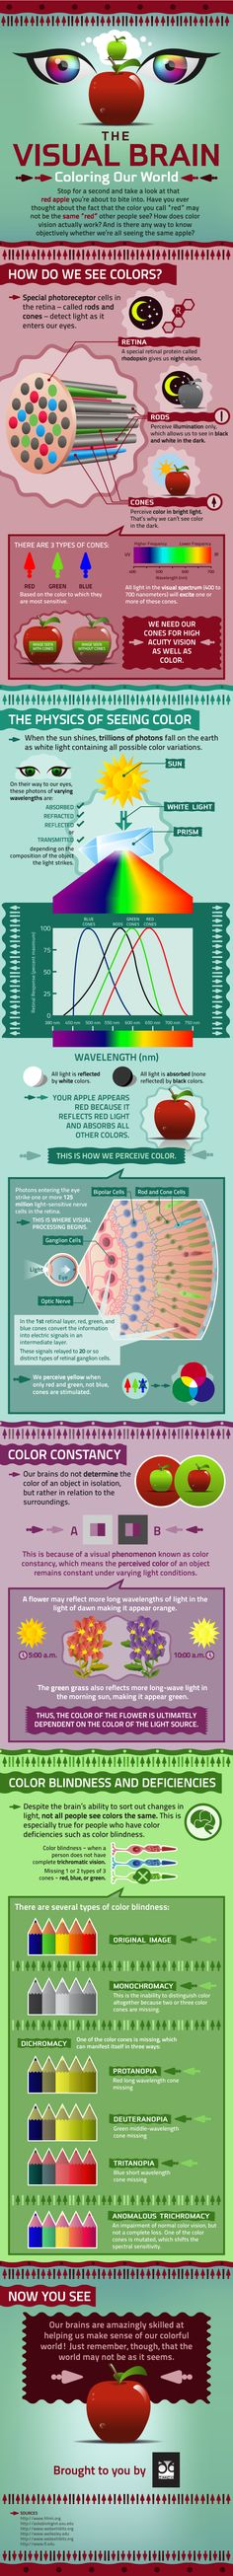 The Visual Brain ¦ Coloring Our World #infographic